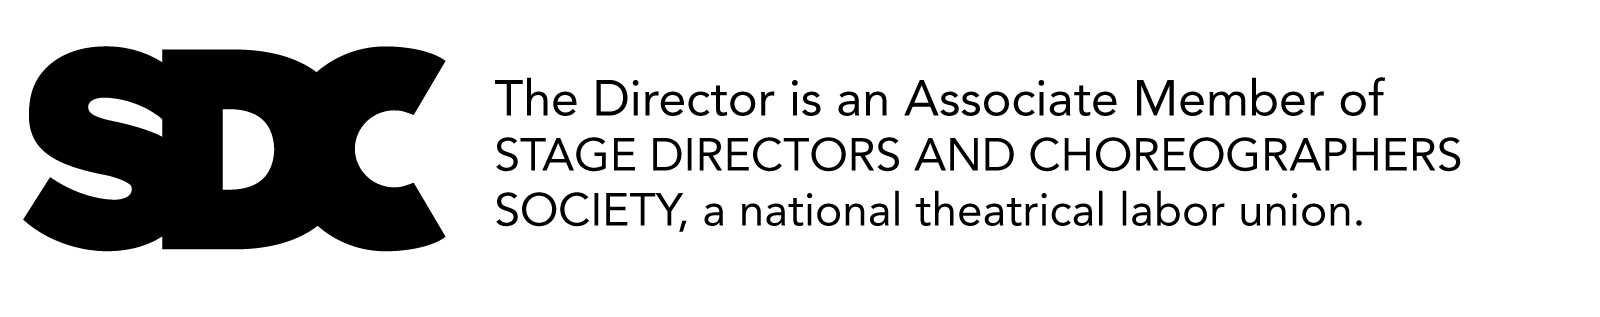 SDC_Program_Logo_Asct_Director.jpg